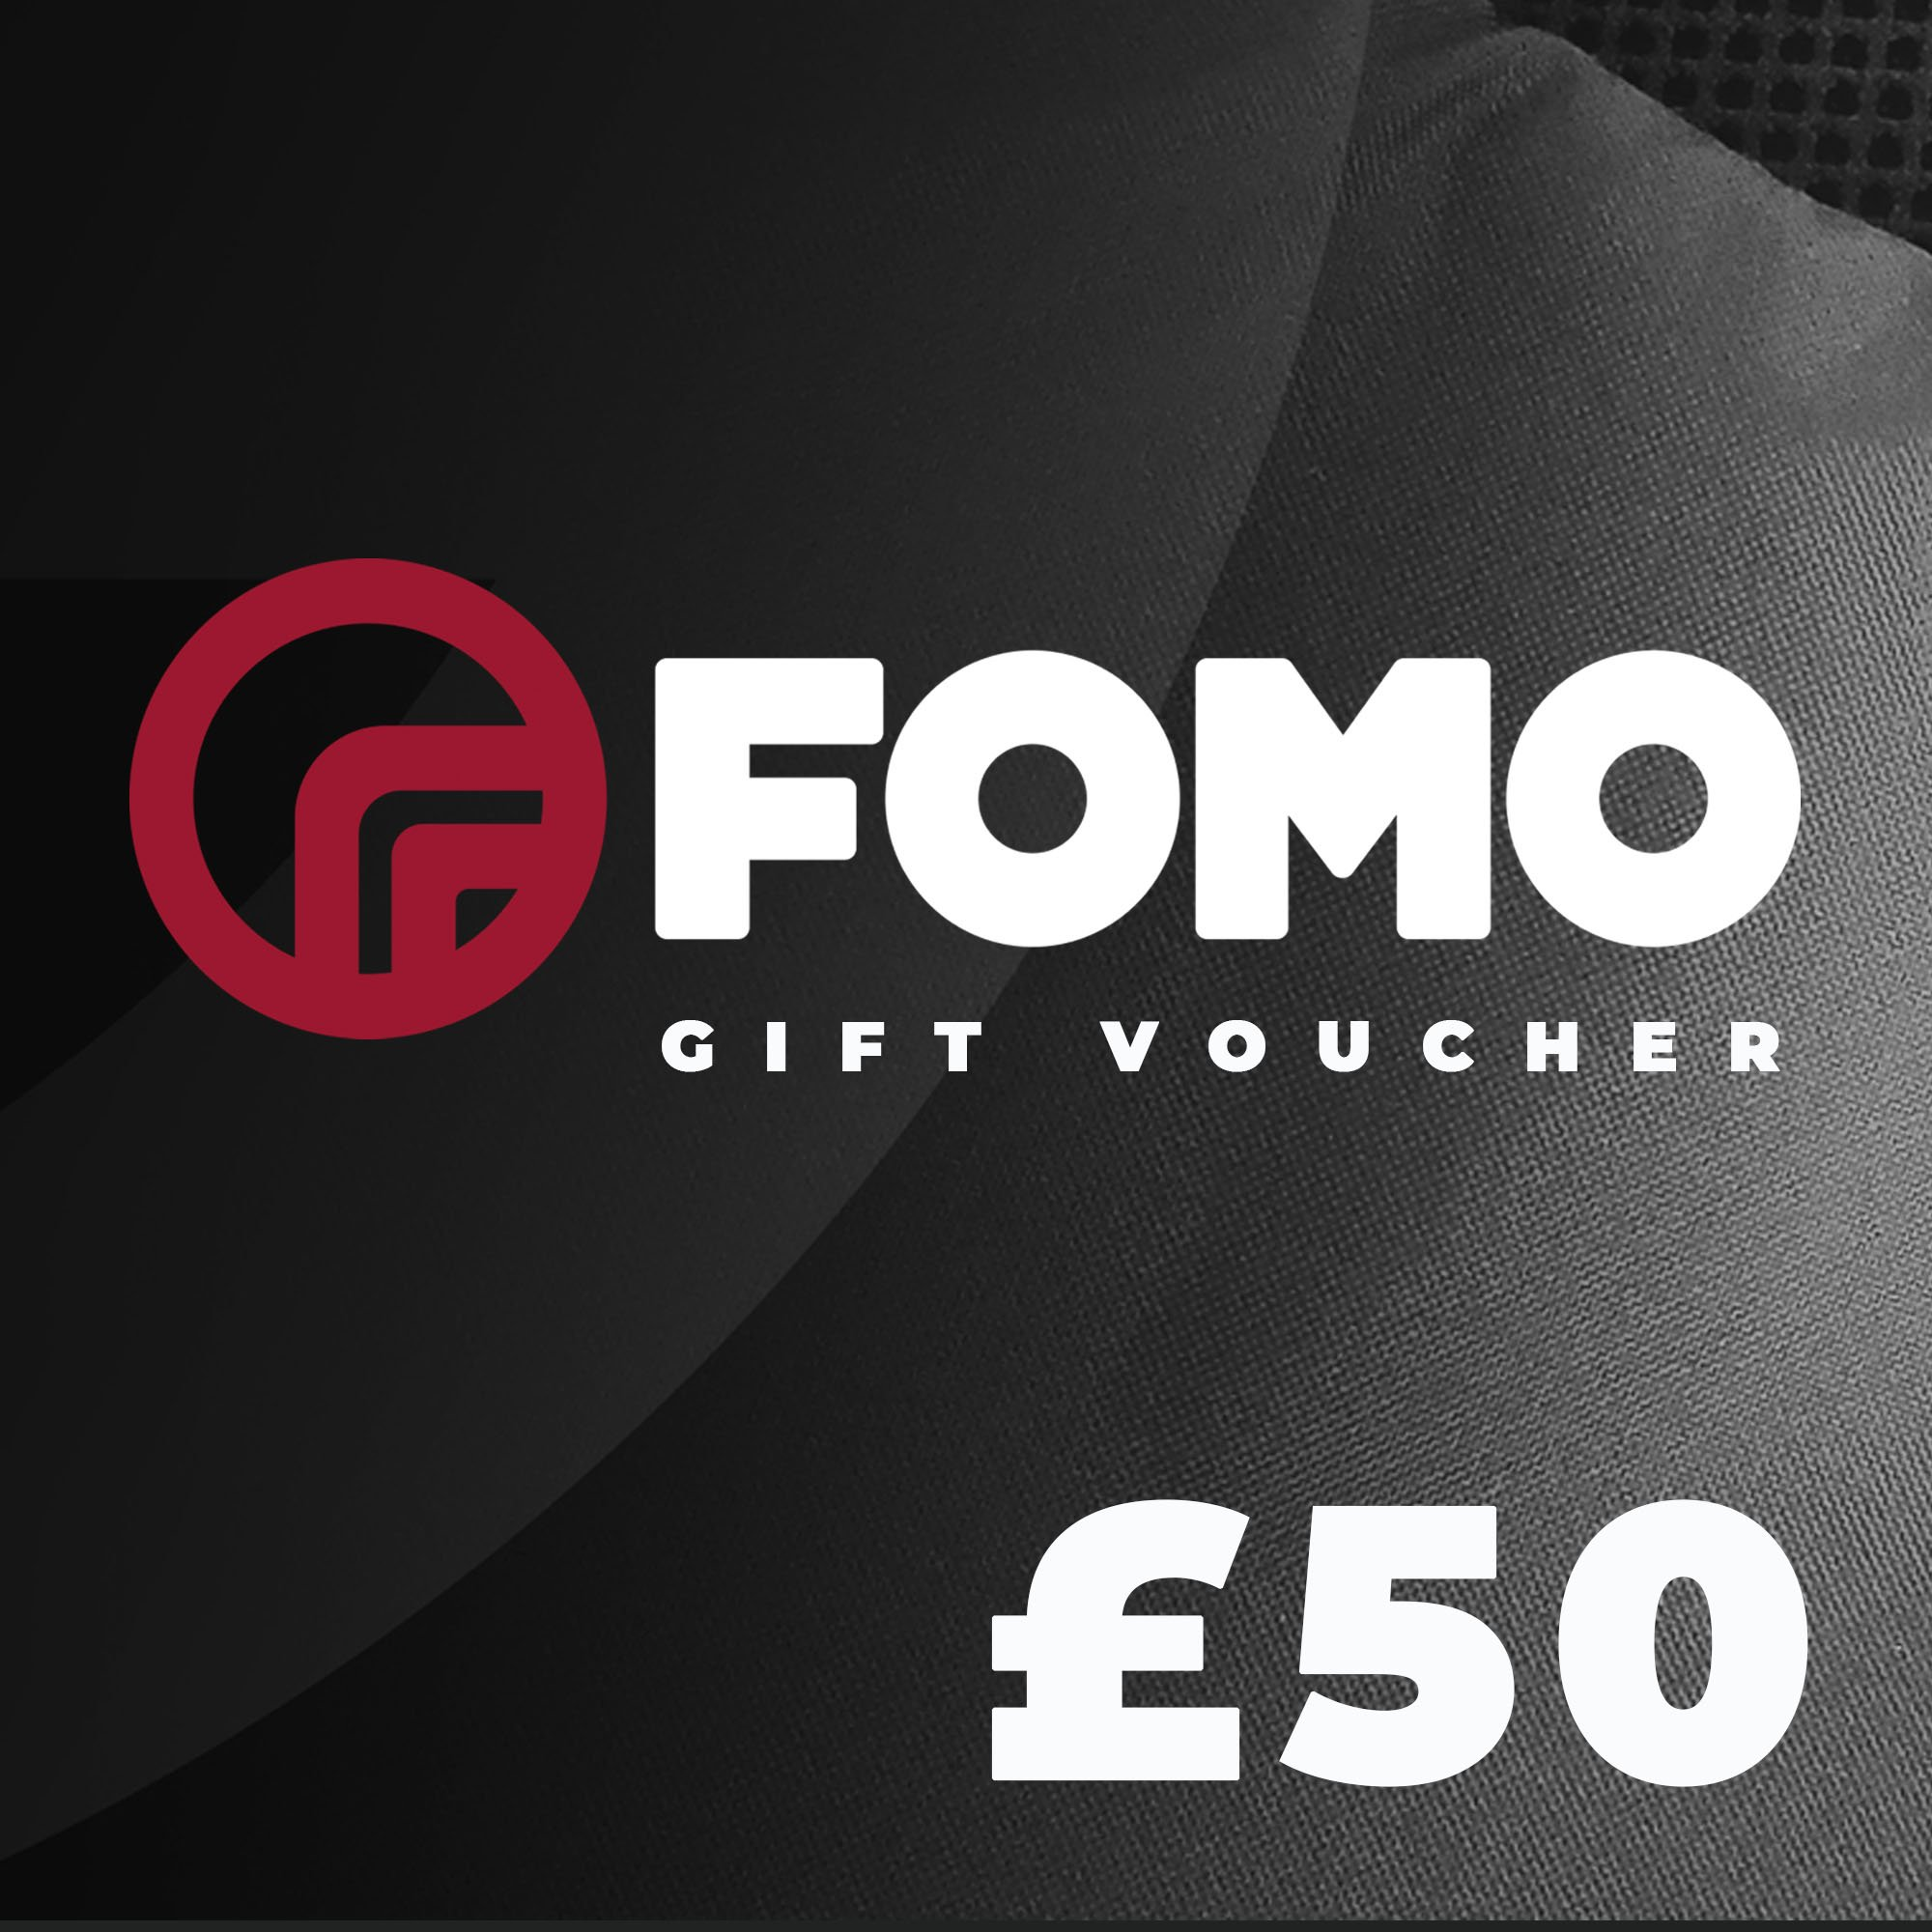 https://www.fomoprotection.com/wp-content/uploads/2019/11/Gift-Voucher-£50.jpg